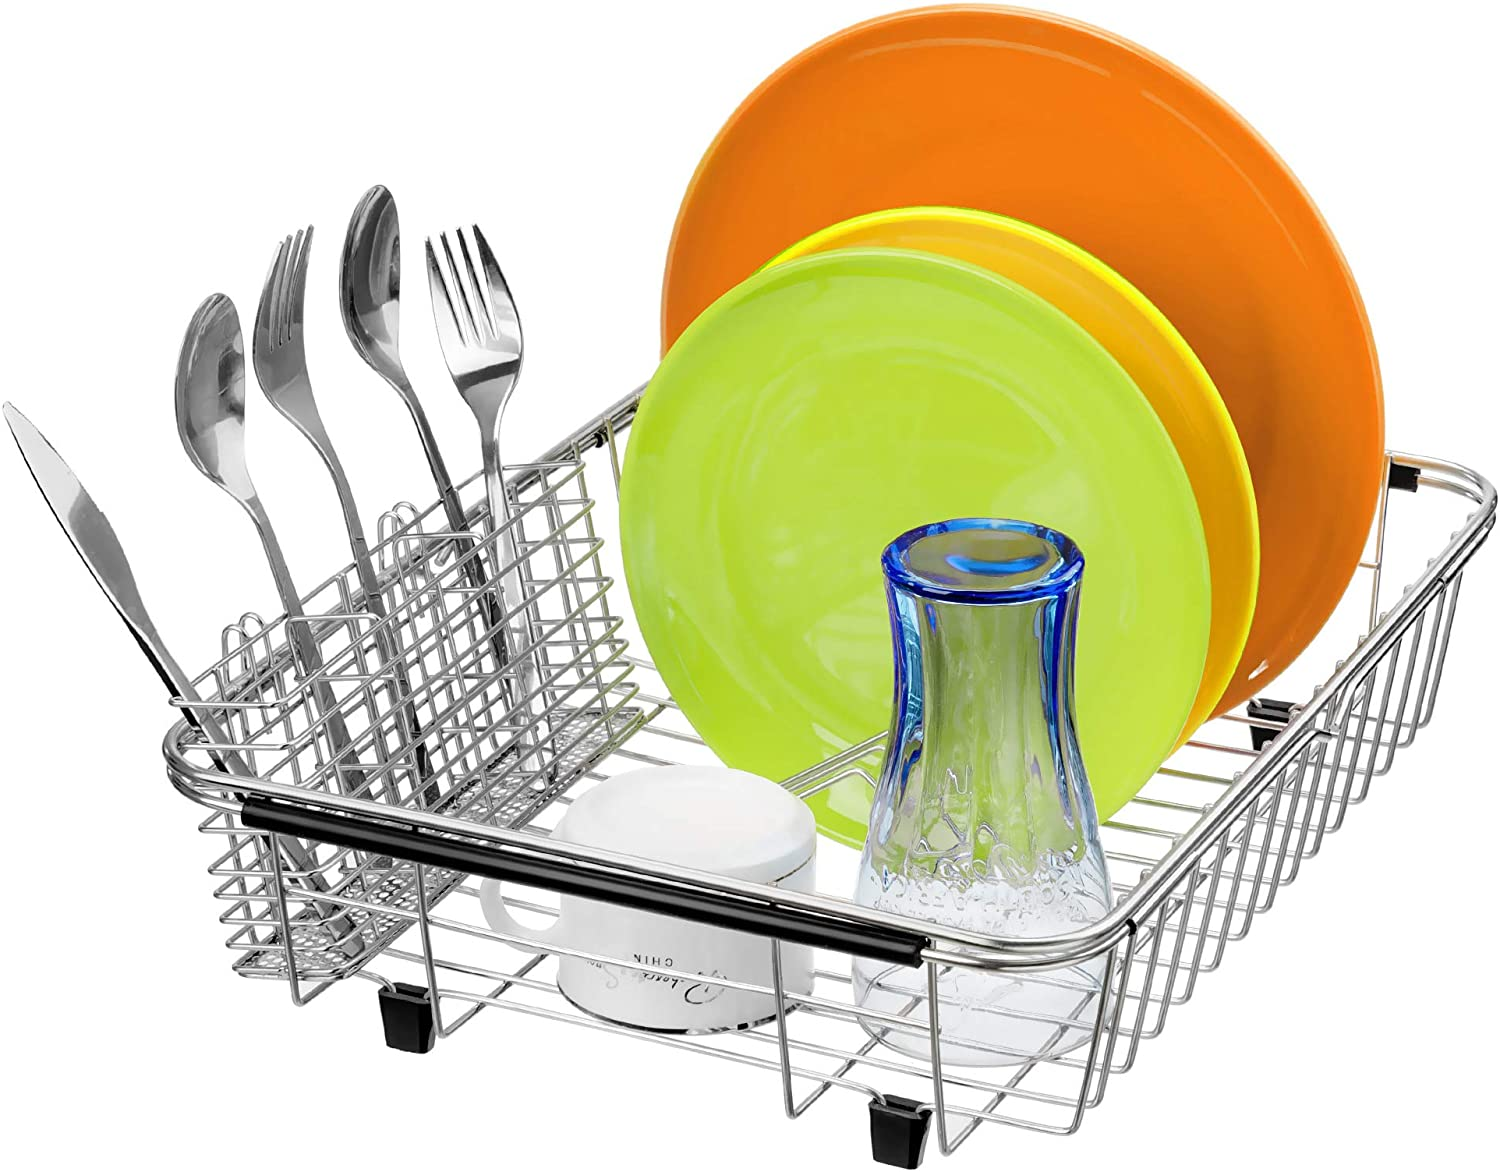 Slideep Expandable Dish Drying Rack, 304 Stainless Steel Over the Sink Dish Rack, in Sink or On Counter Dish Drainer with Stainless Steel removable Utensil Holder